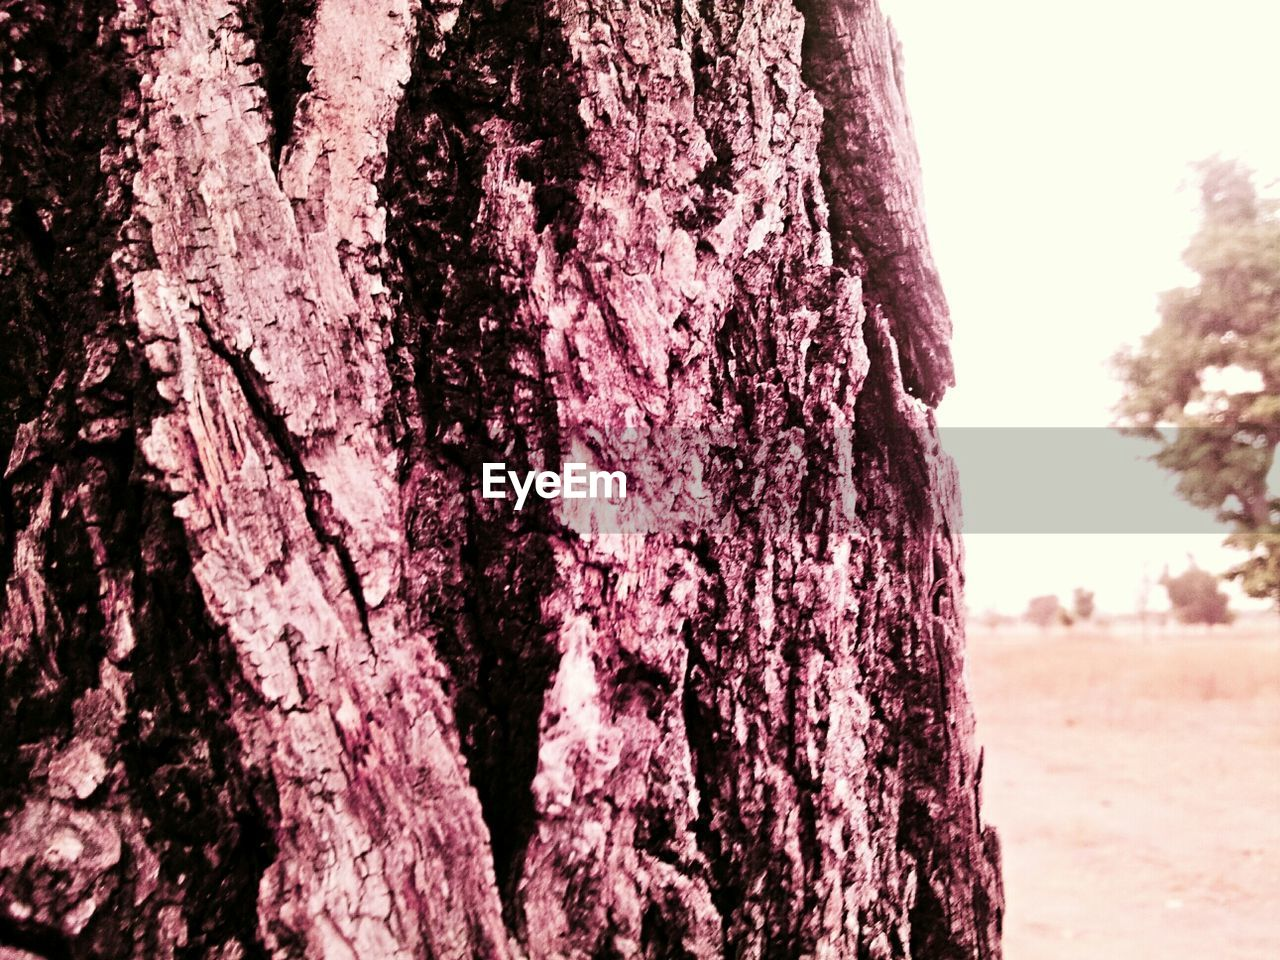 tree trunk, tree, bark, nature, growth, textured, day, beauty in nature, outdoors, close-up, no people, sky